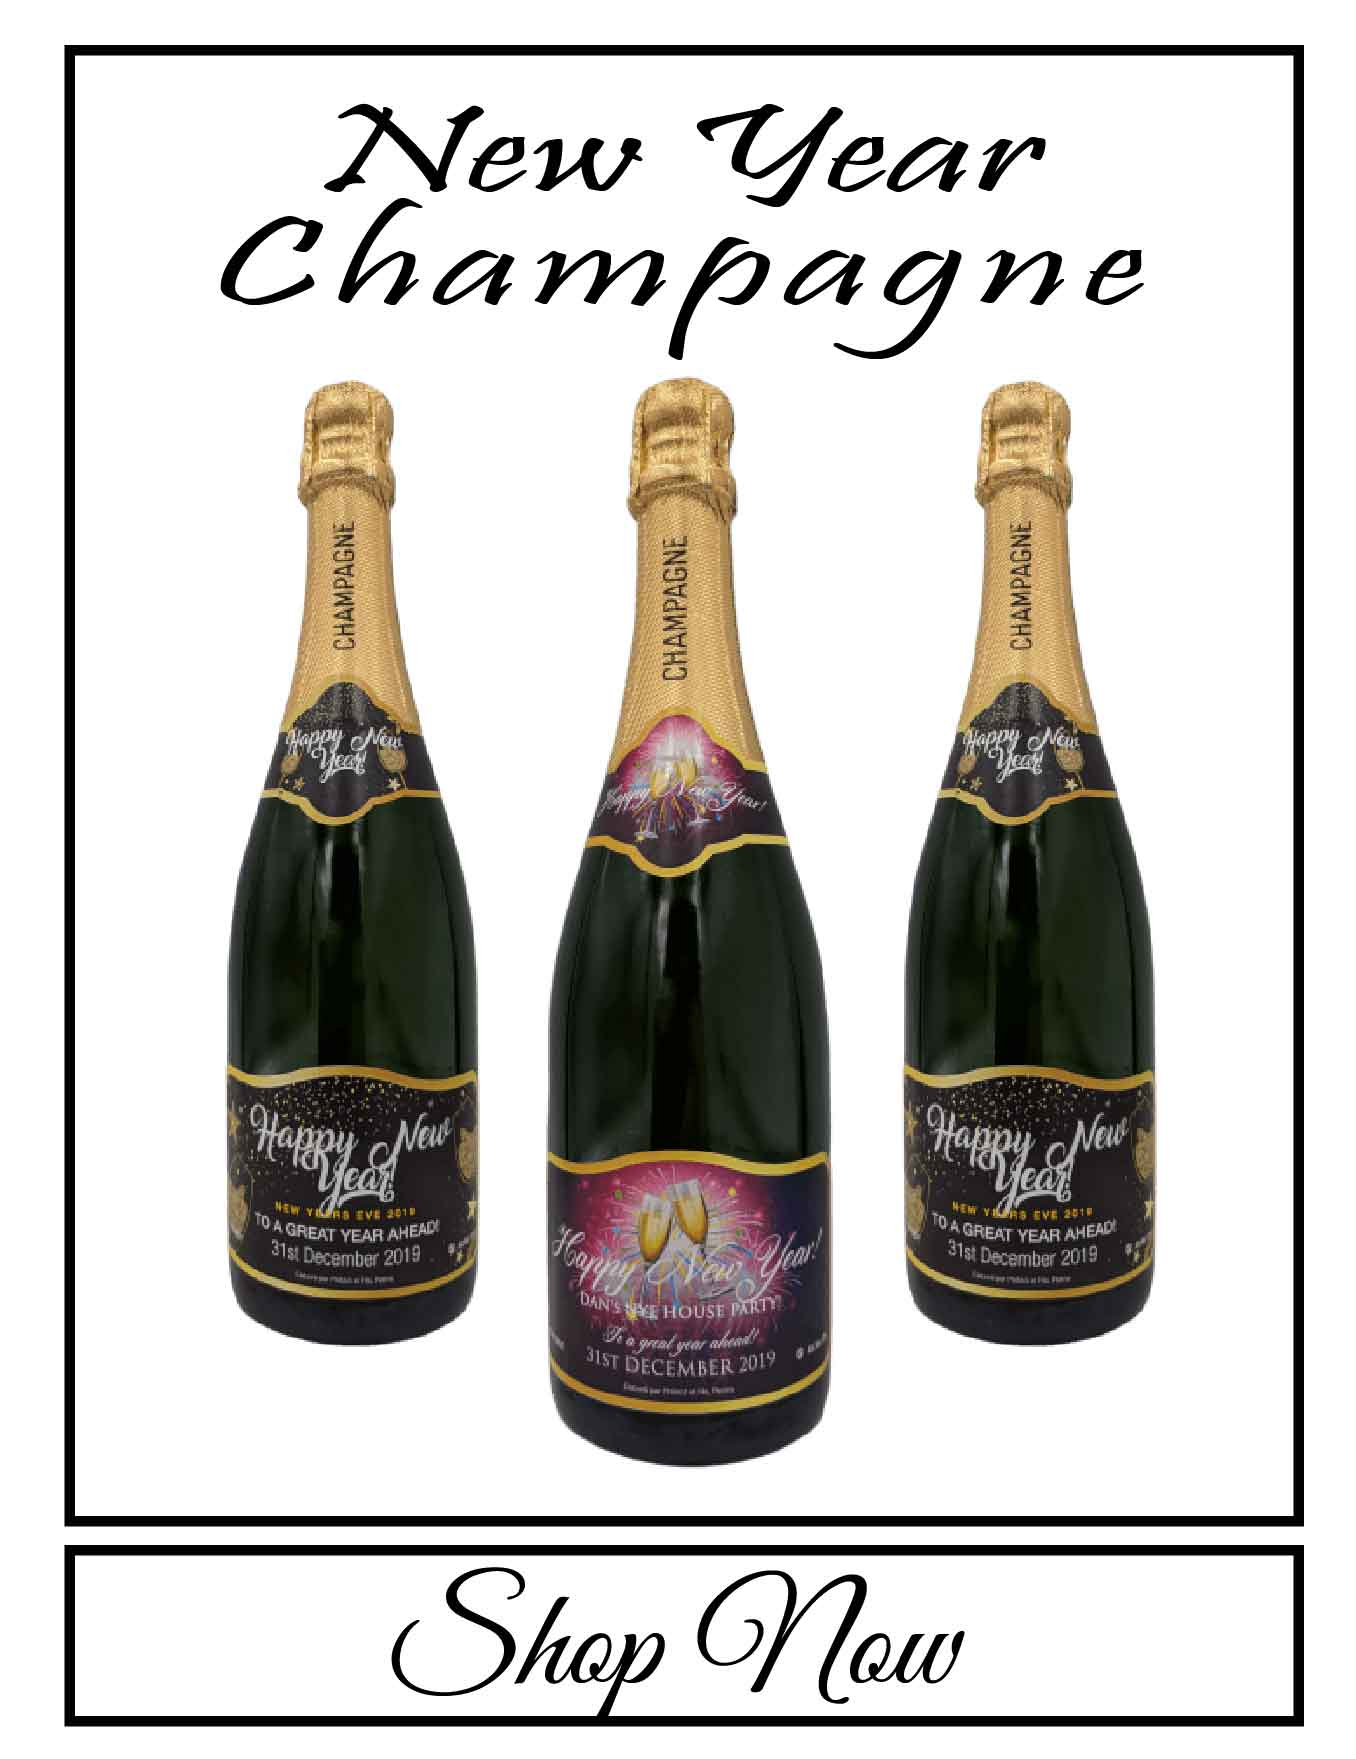 personalised Champagne customised bottle label delivery uk sparkling wine new year gift present bespoke unique